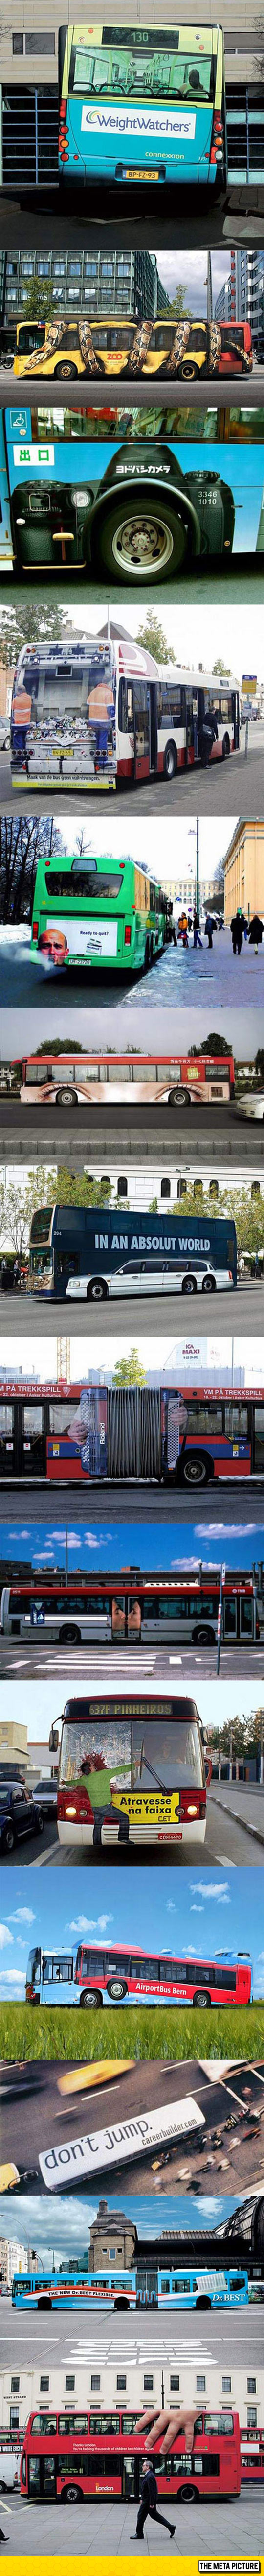 cool-bus-ads-paintings-art